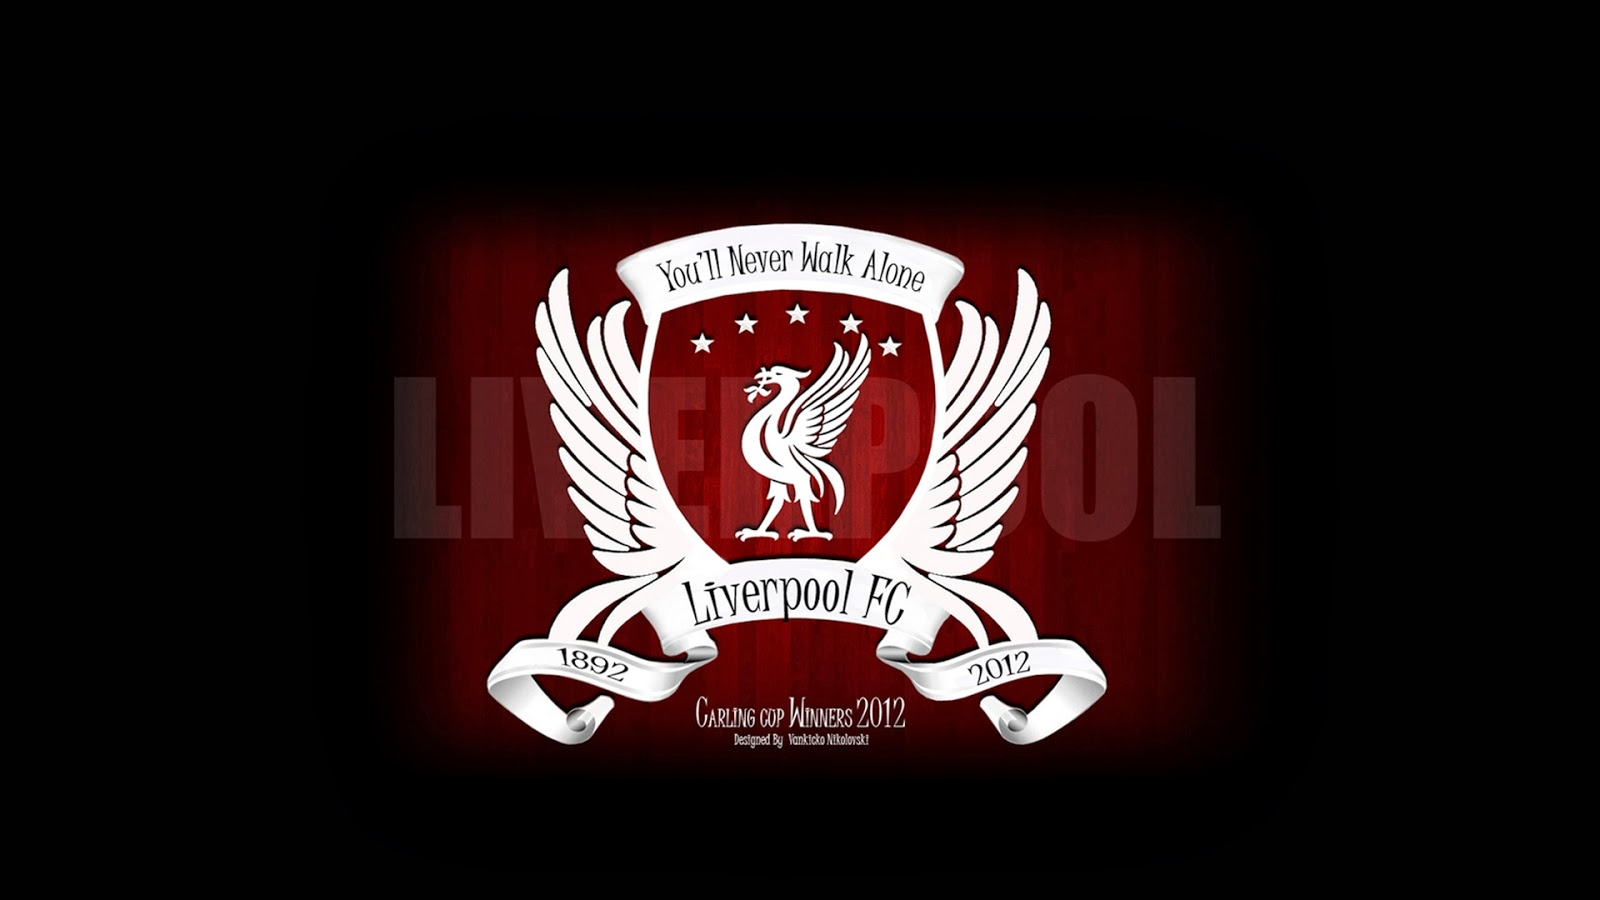 Liverpool Football Club Logo in high resolution newer walk alone